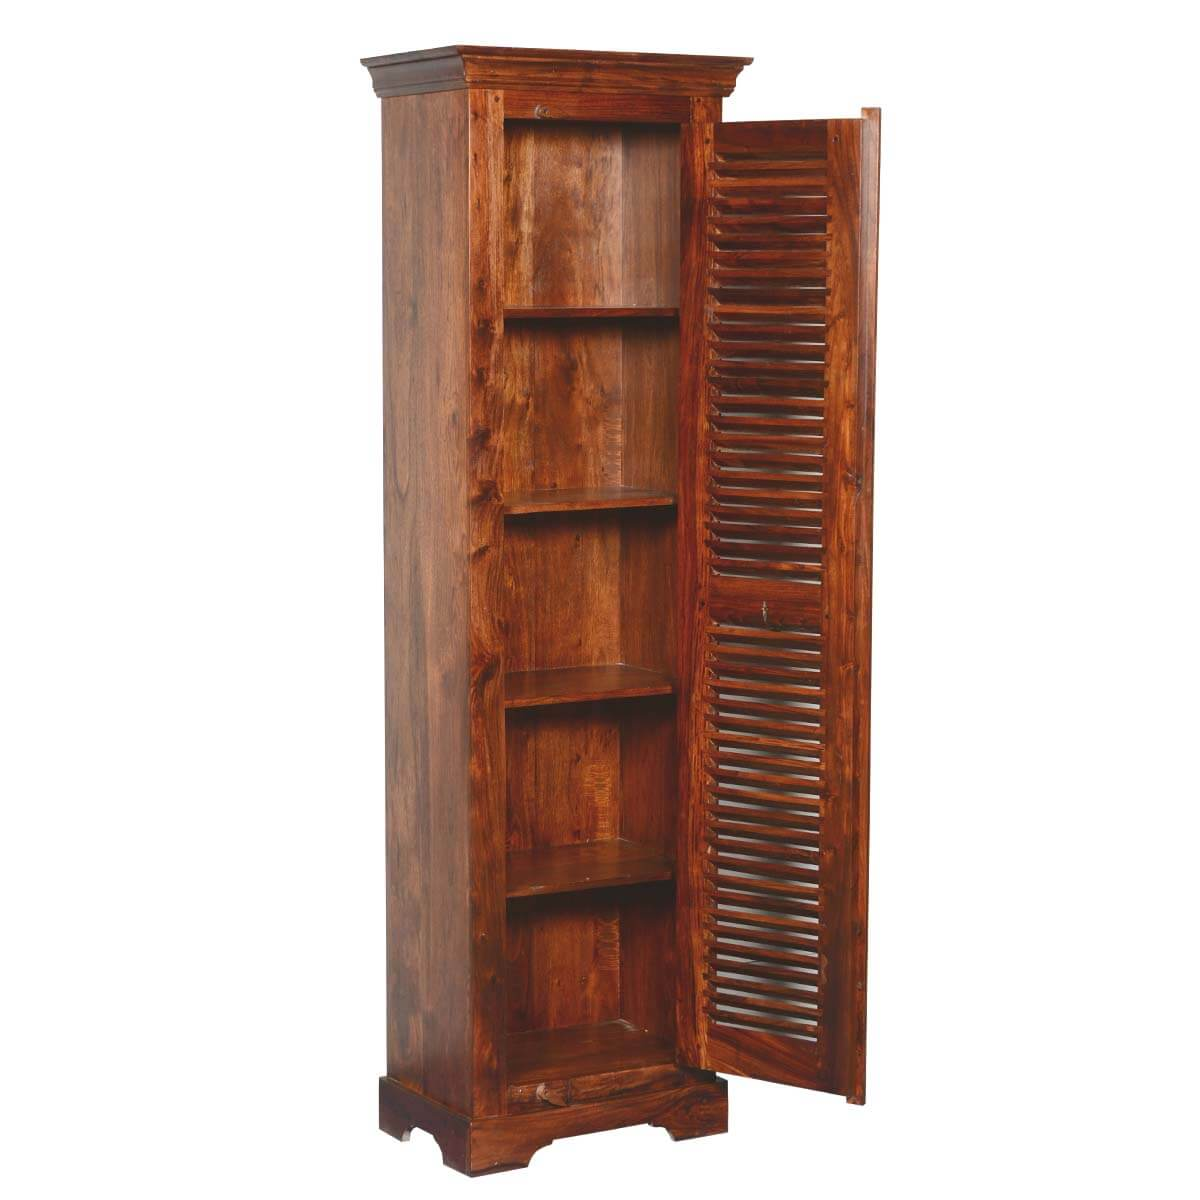 Farmhouse Shutters For Sale Farmhouse Shutter Door Solid Wood And Acacia 79 Quot Tower Cabinet